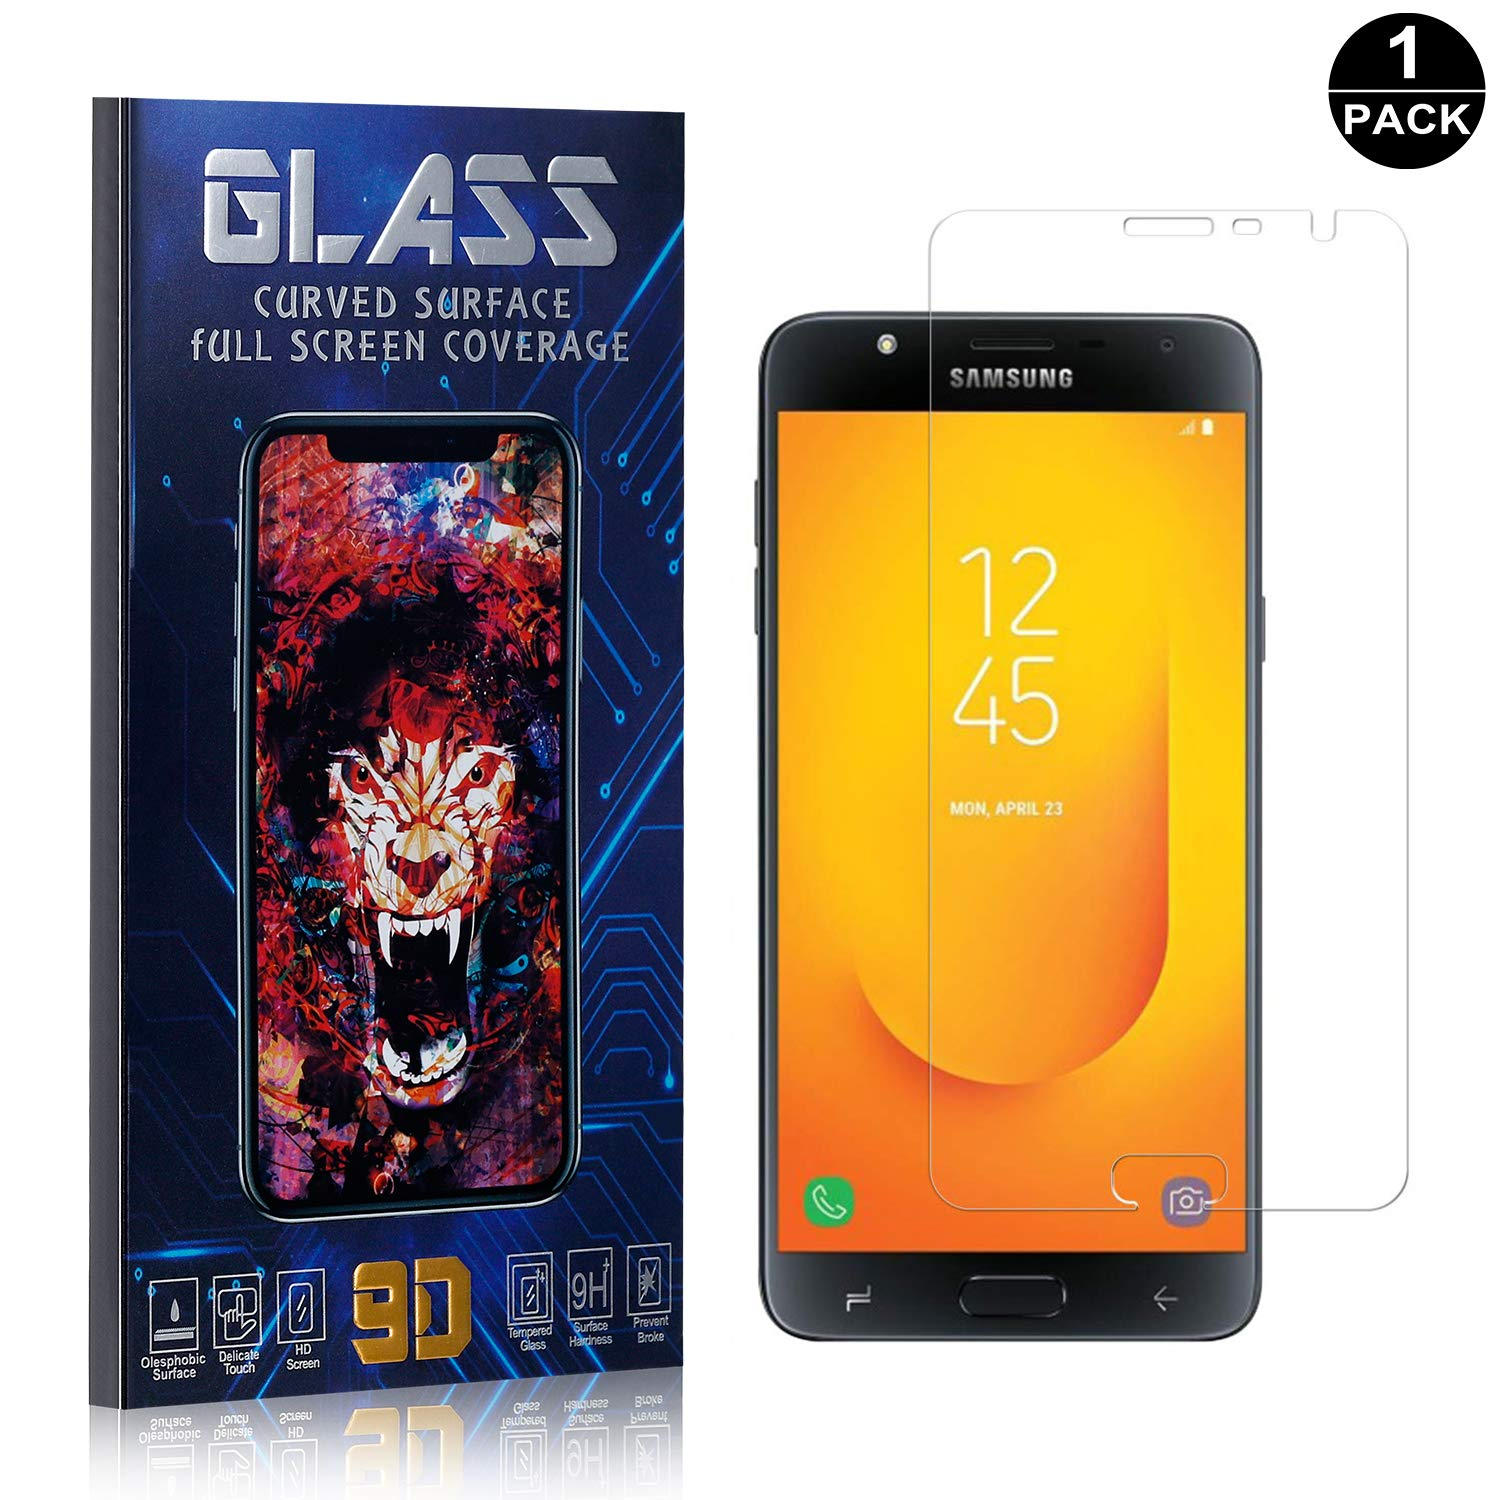 Bear Village Screen Protector for Galaxy J7 Duo 1 Pack Scratch Resistant Ultra Clear Tempered Glass Screen Protector Film for Samsung Galaxy J7 Duo